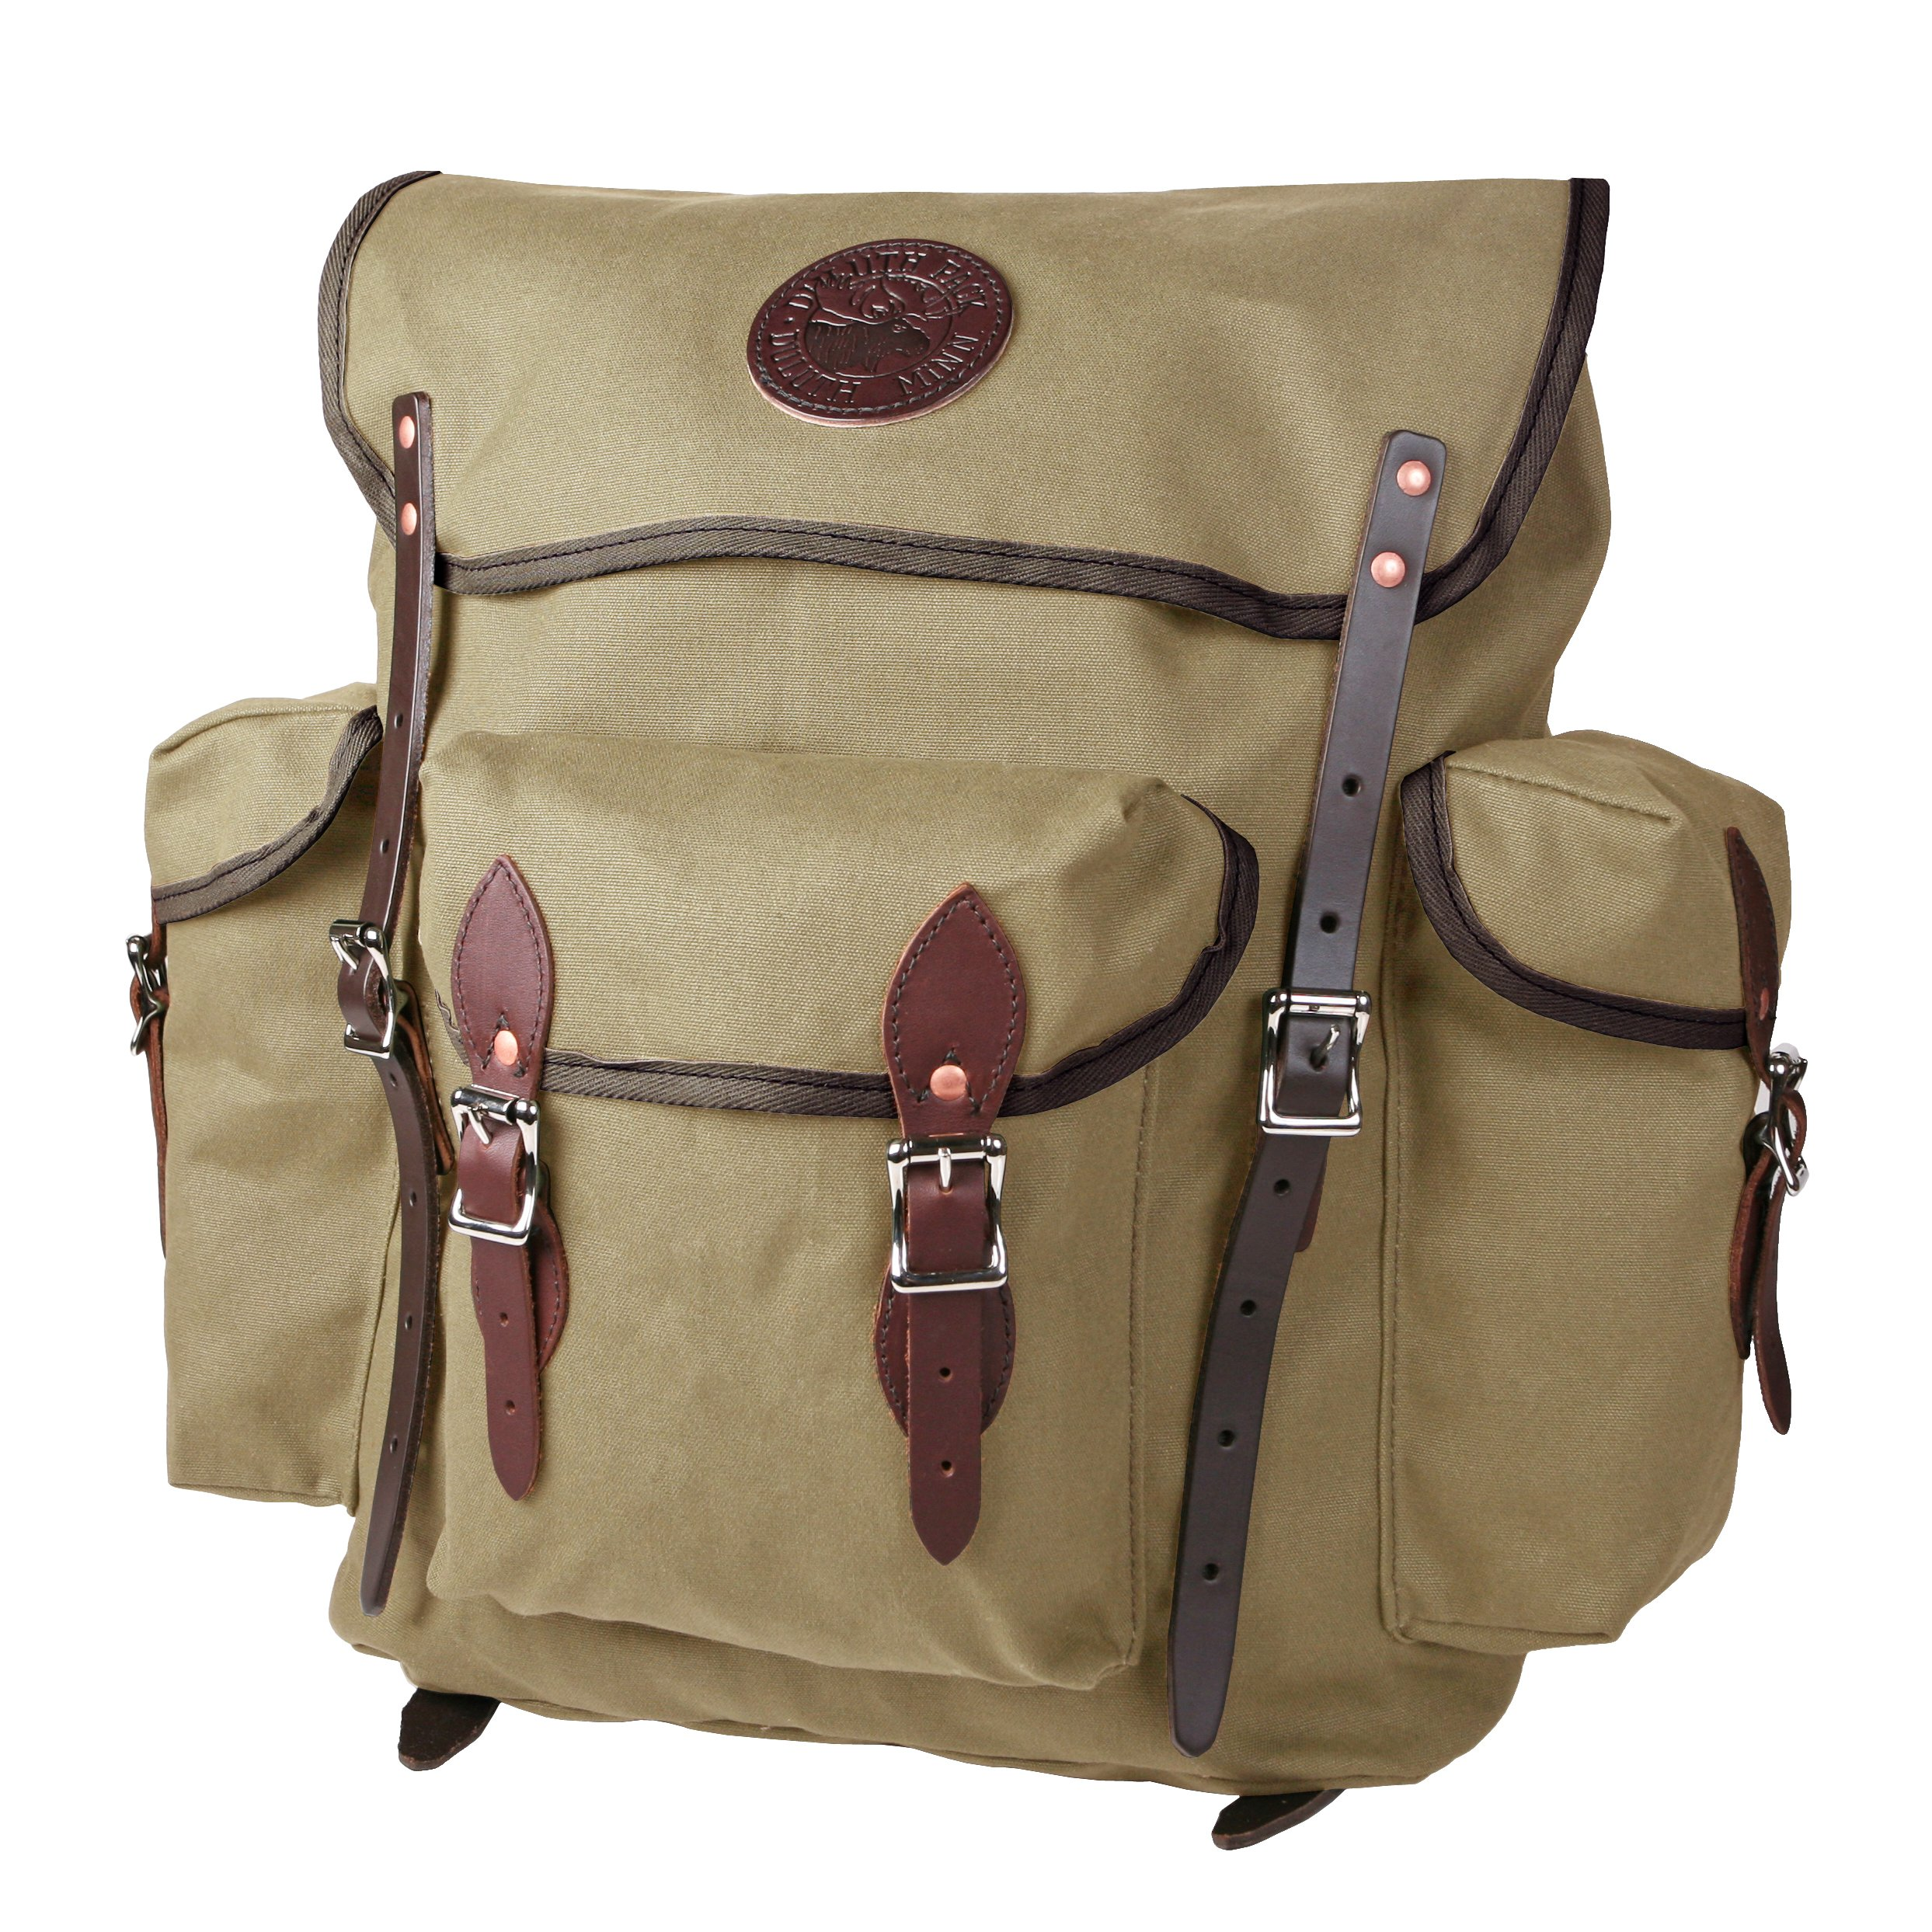 Duluth Pack Rambler Pack, Tan, 16 x 15 x 6-Inch by Duluth Pack (Image #1)